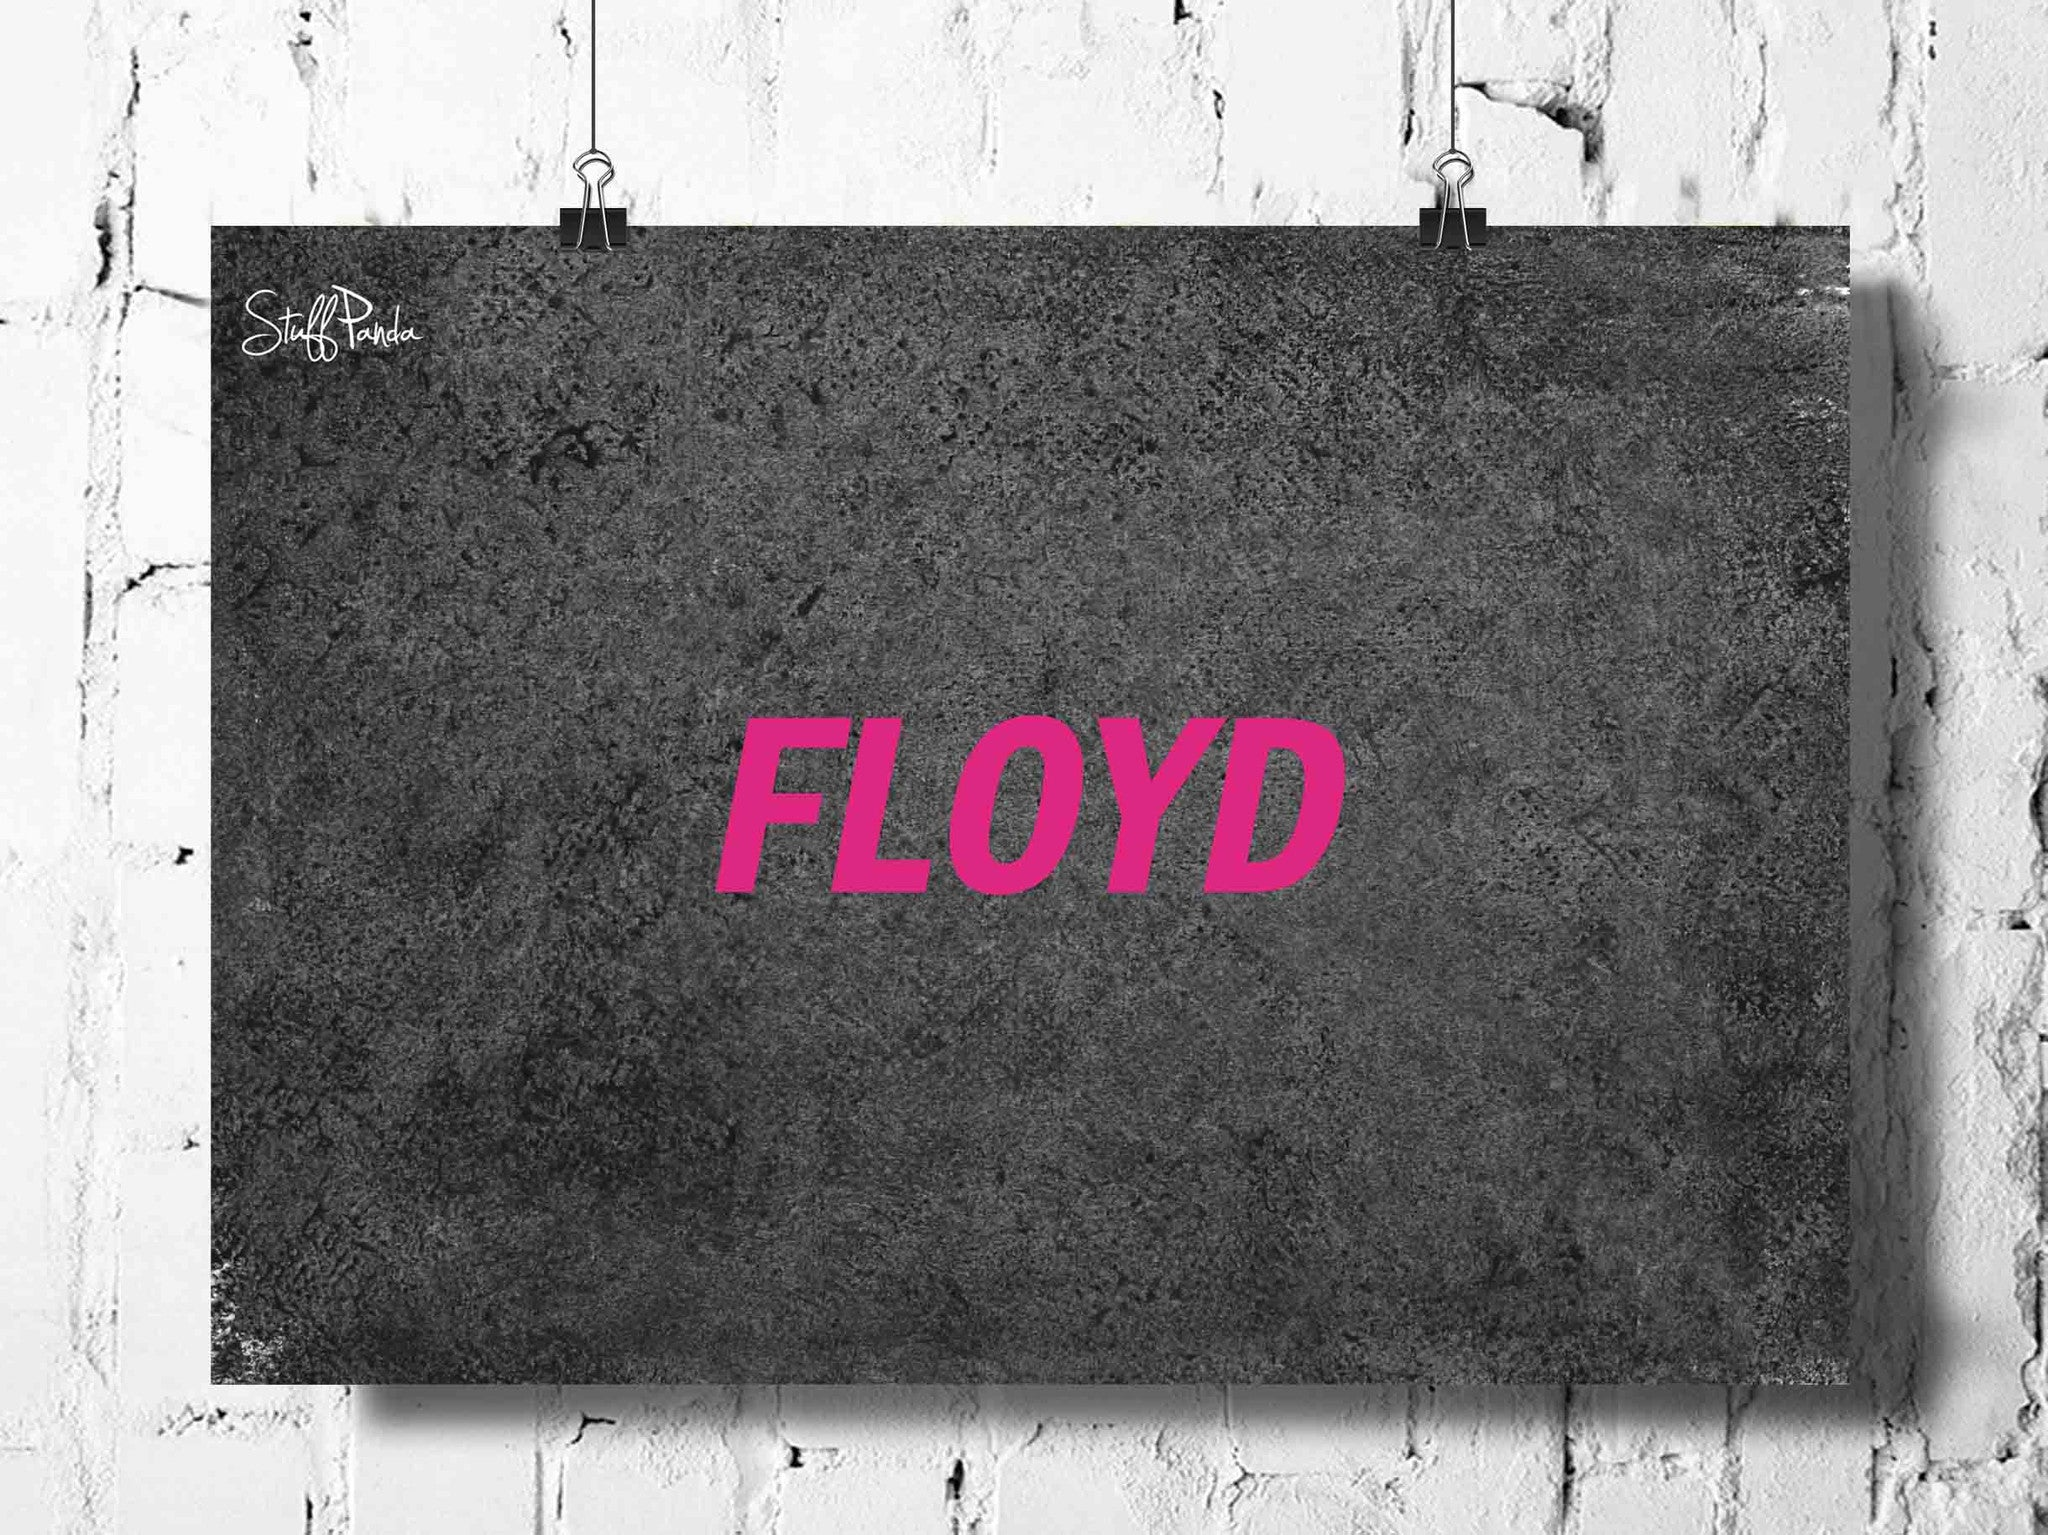 Cool Abstract Music psychedelic Floyd Single word wall posters, art prints, stickers decals - stuffpanda - 1